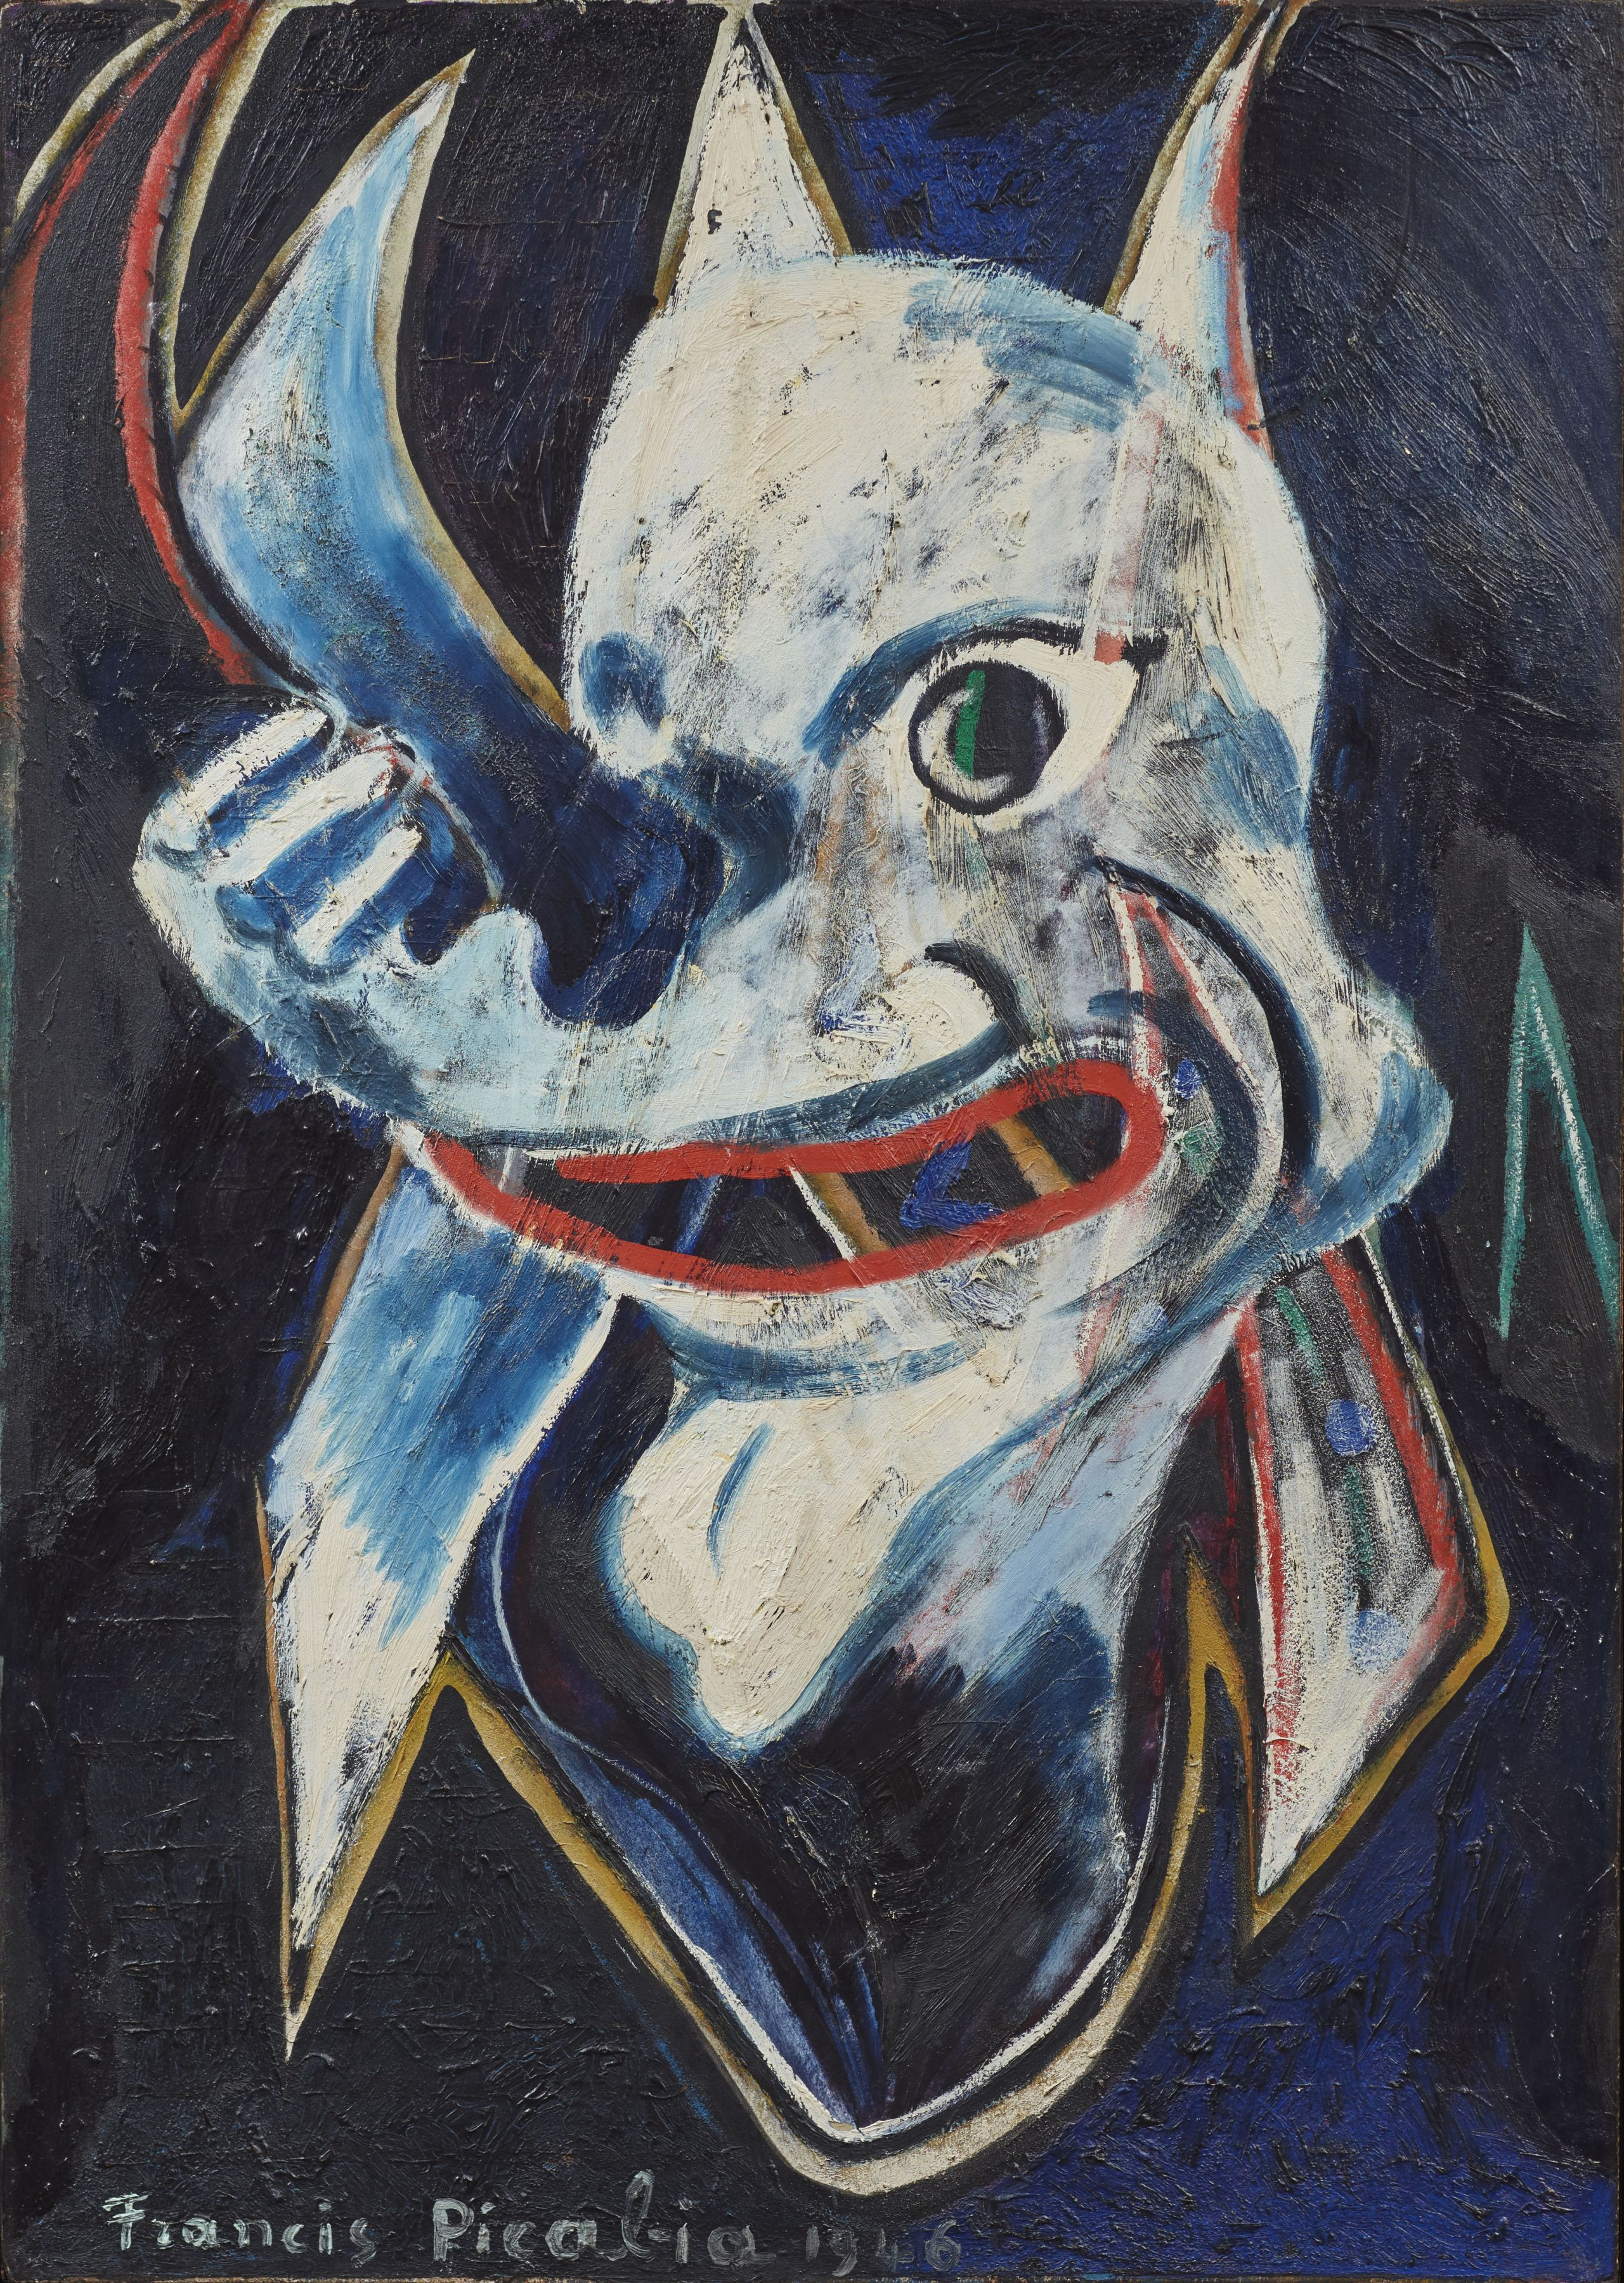 Francis Picabia Monstre, 1946